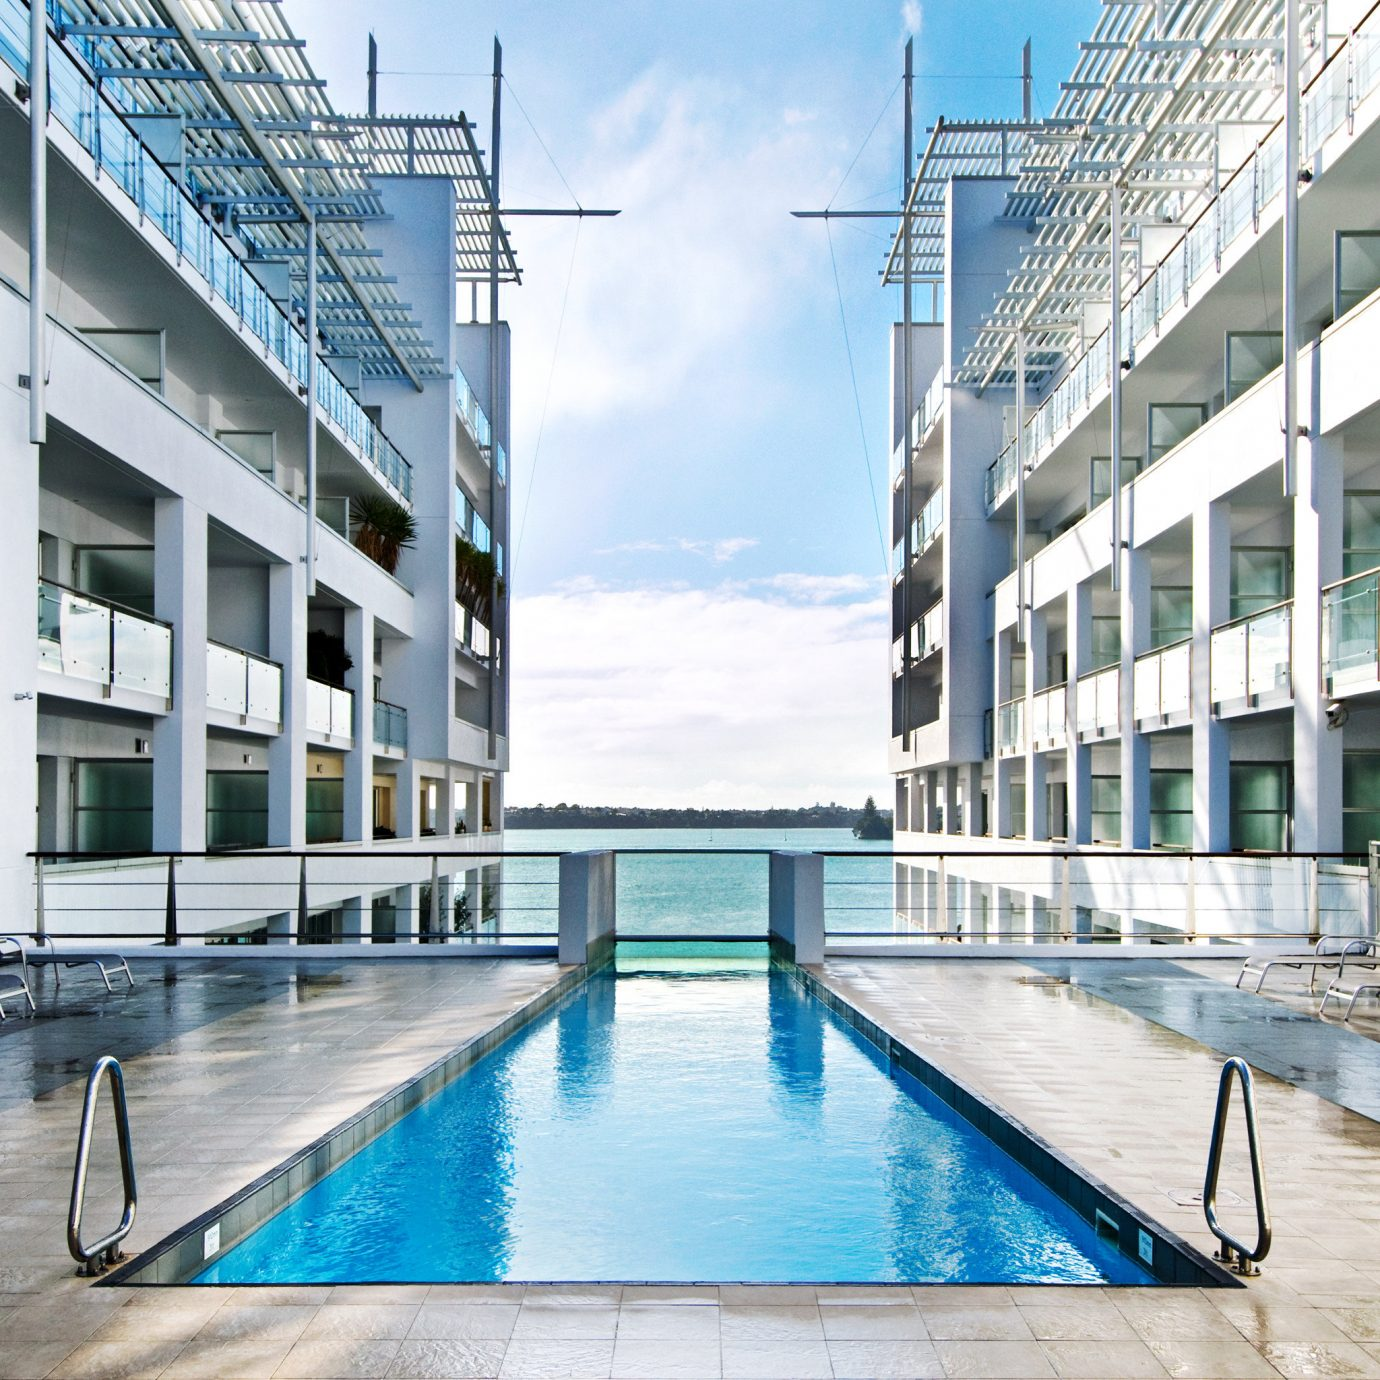 Architecture Boutique Hotels Festivals + Events Hotels Play Pool Resort Trip Ideas Waterfront water ground leisure swimming pool condominium building plaza headquarters blue swimming